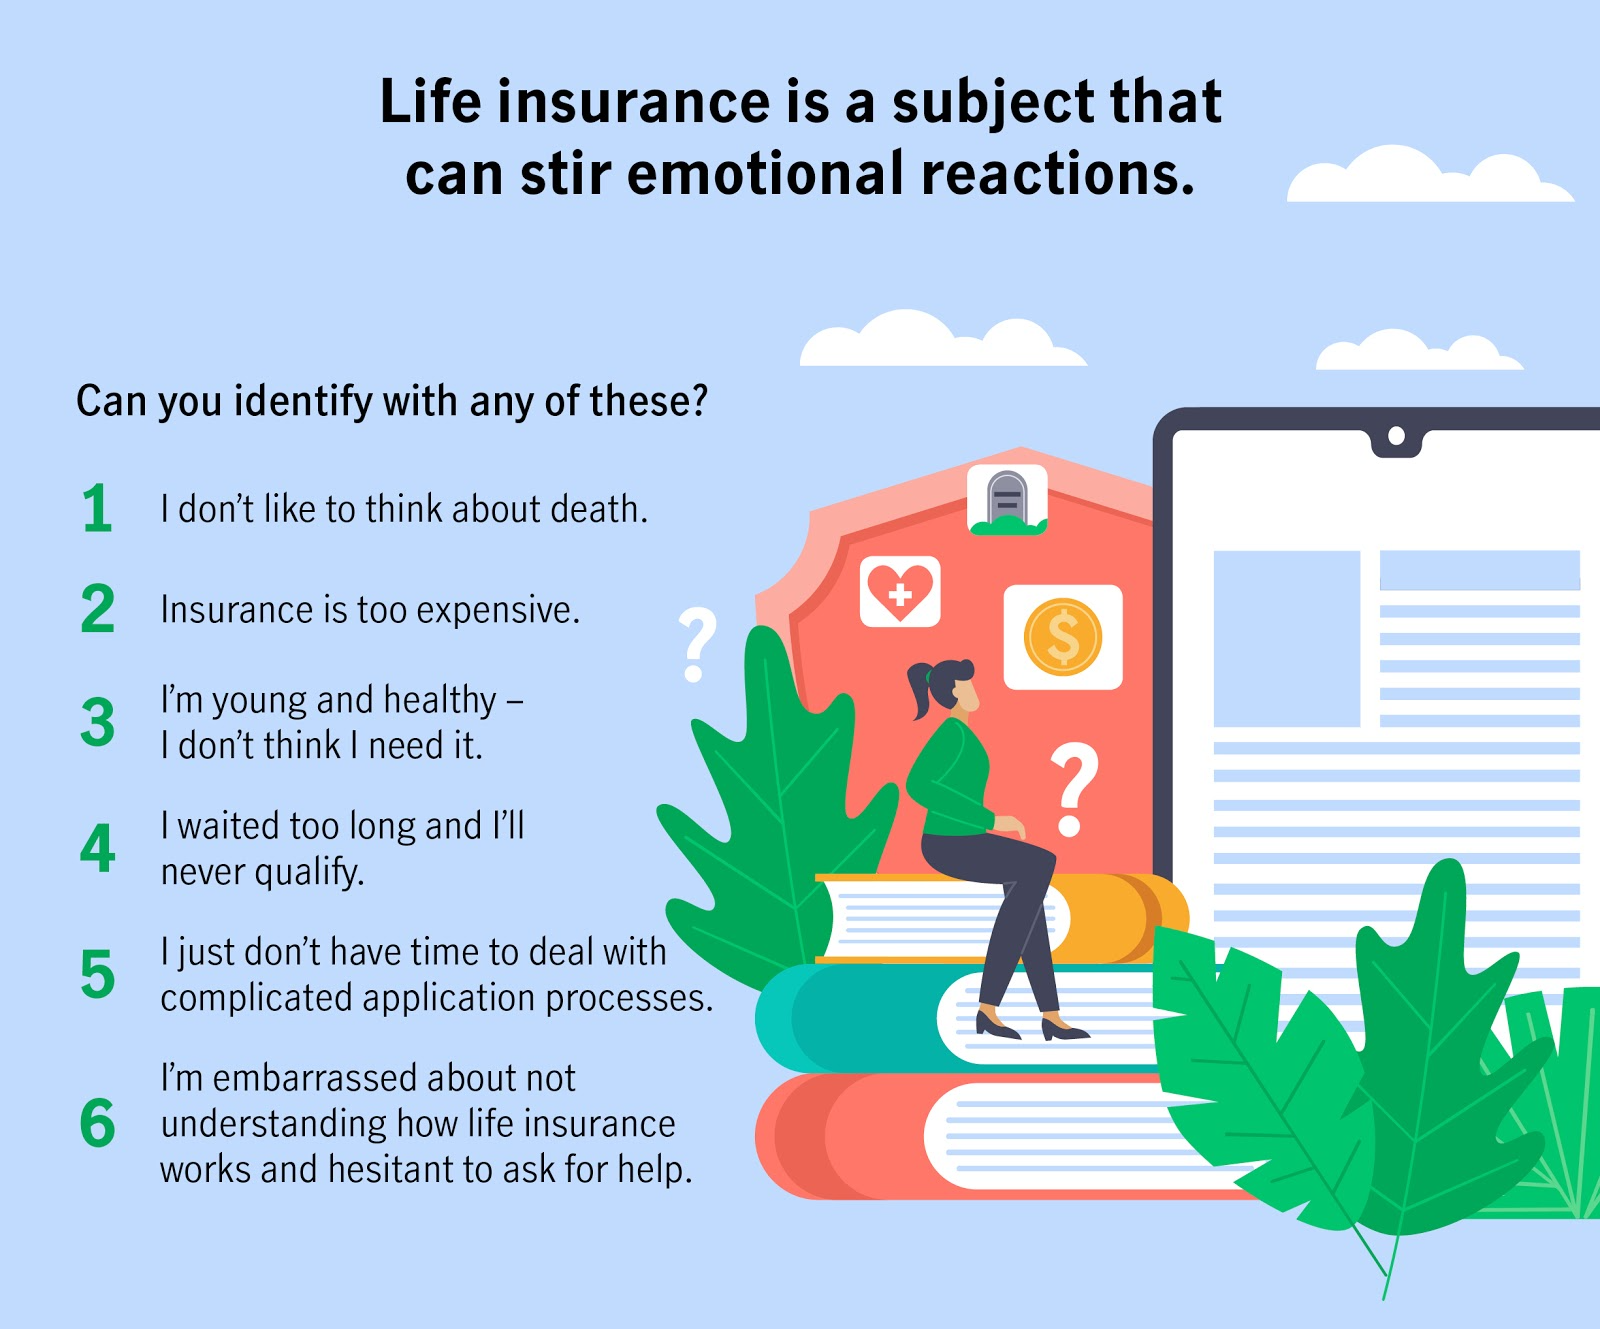 Life insurance is a subject that can stir emotional reactions. Can you identify with any of these statements?  I don't like to think about death. Insurance is too expensive. I'm young and healthy – I don't think I need it. I waited too long and I'll never qualify. I just don't have time to deal with complicated application processes. I'm embarrassed about not understanding how life insurance works and hesitant to ask for help.